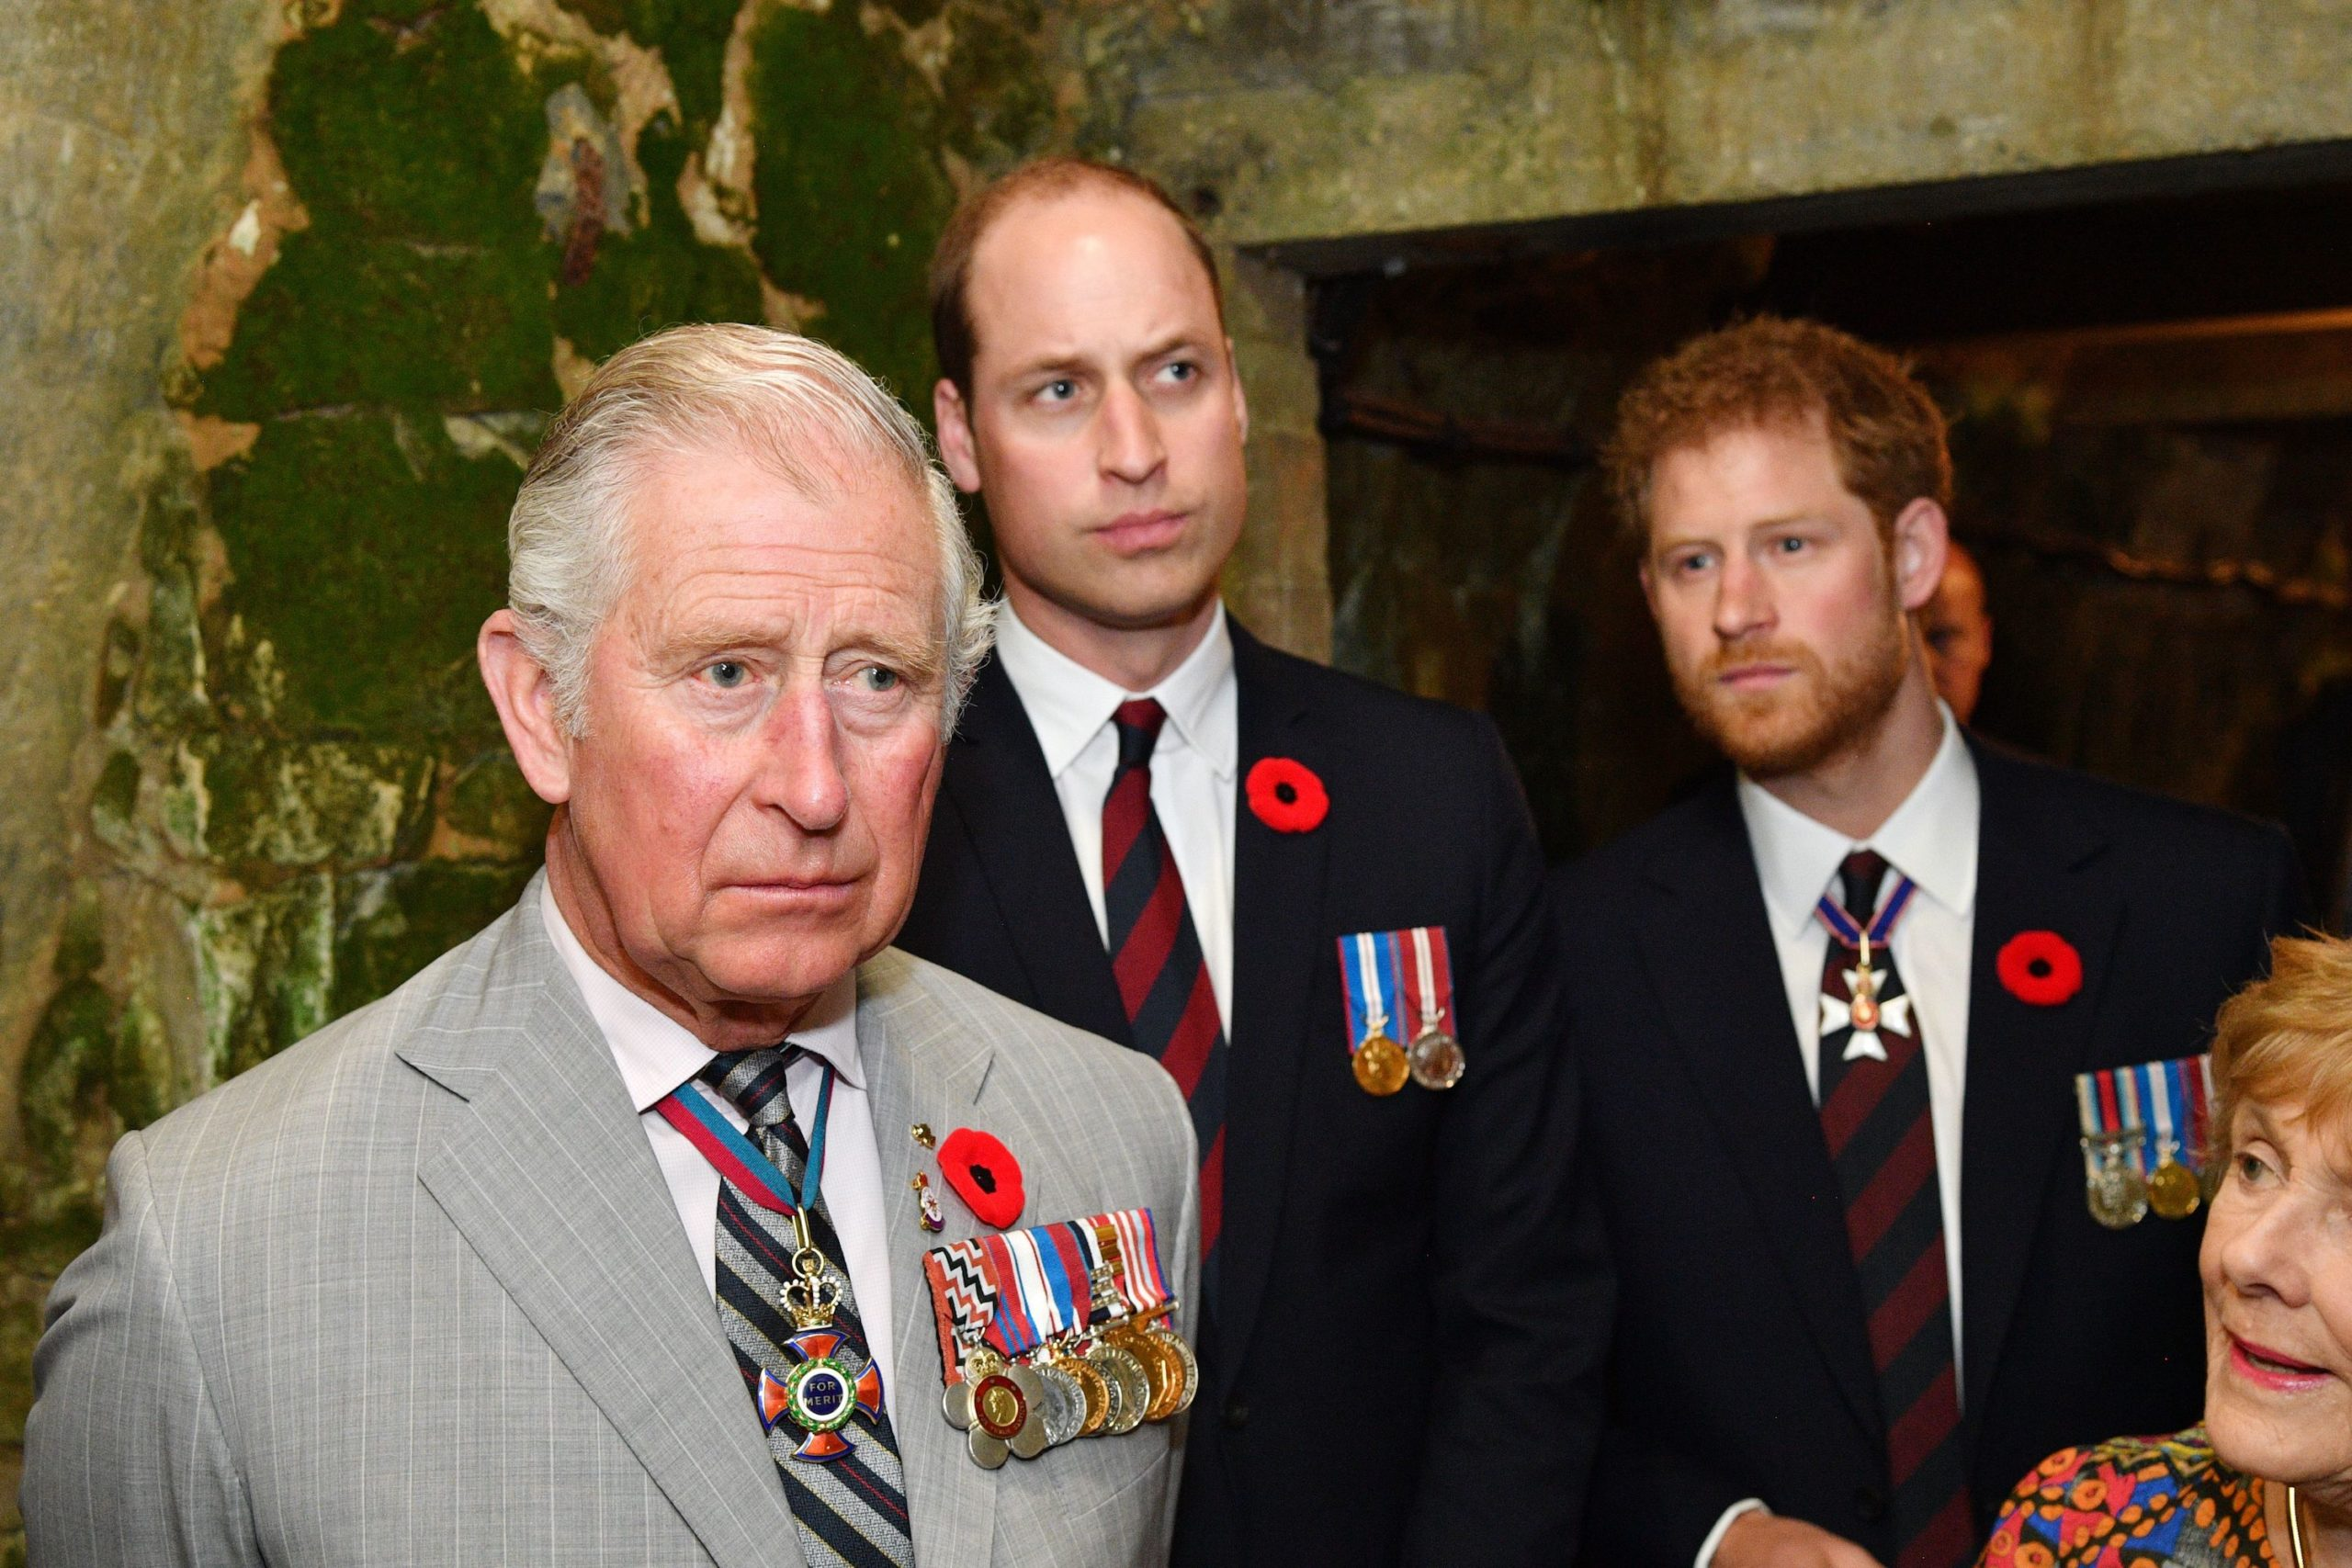 Prince William and Prince Harry standing next to their dad, Prince Charles